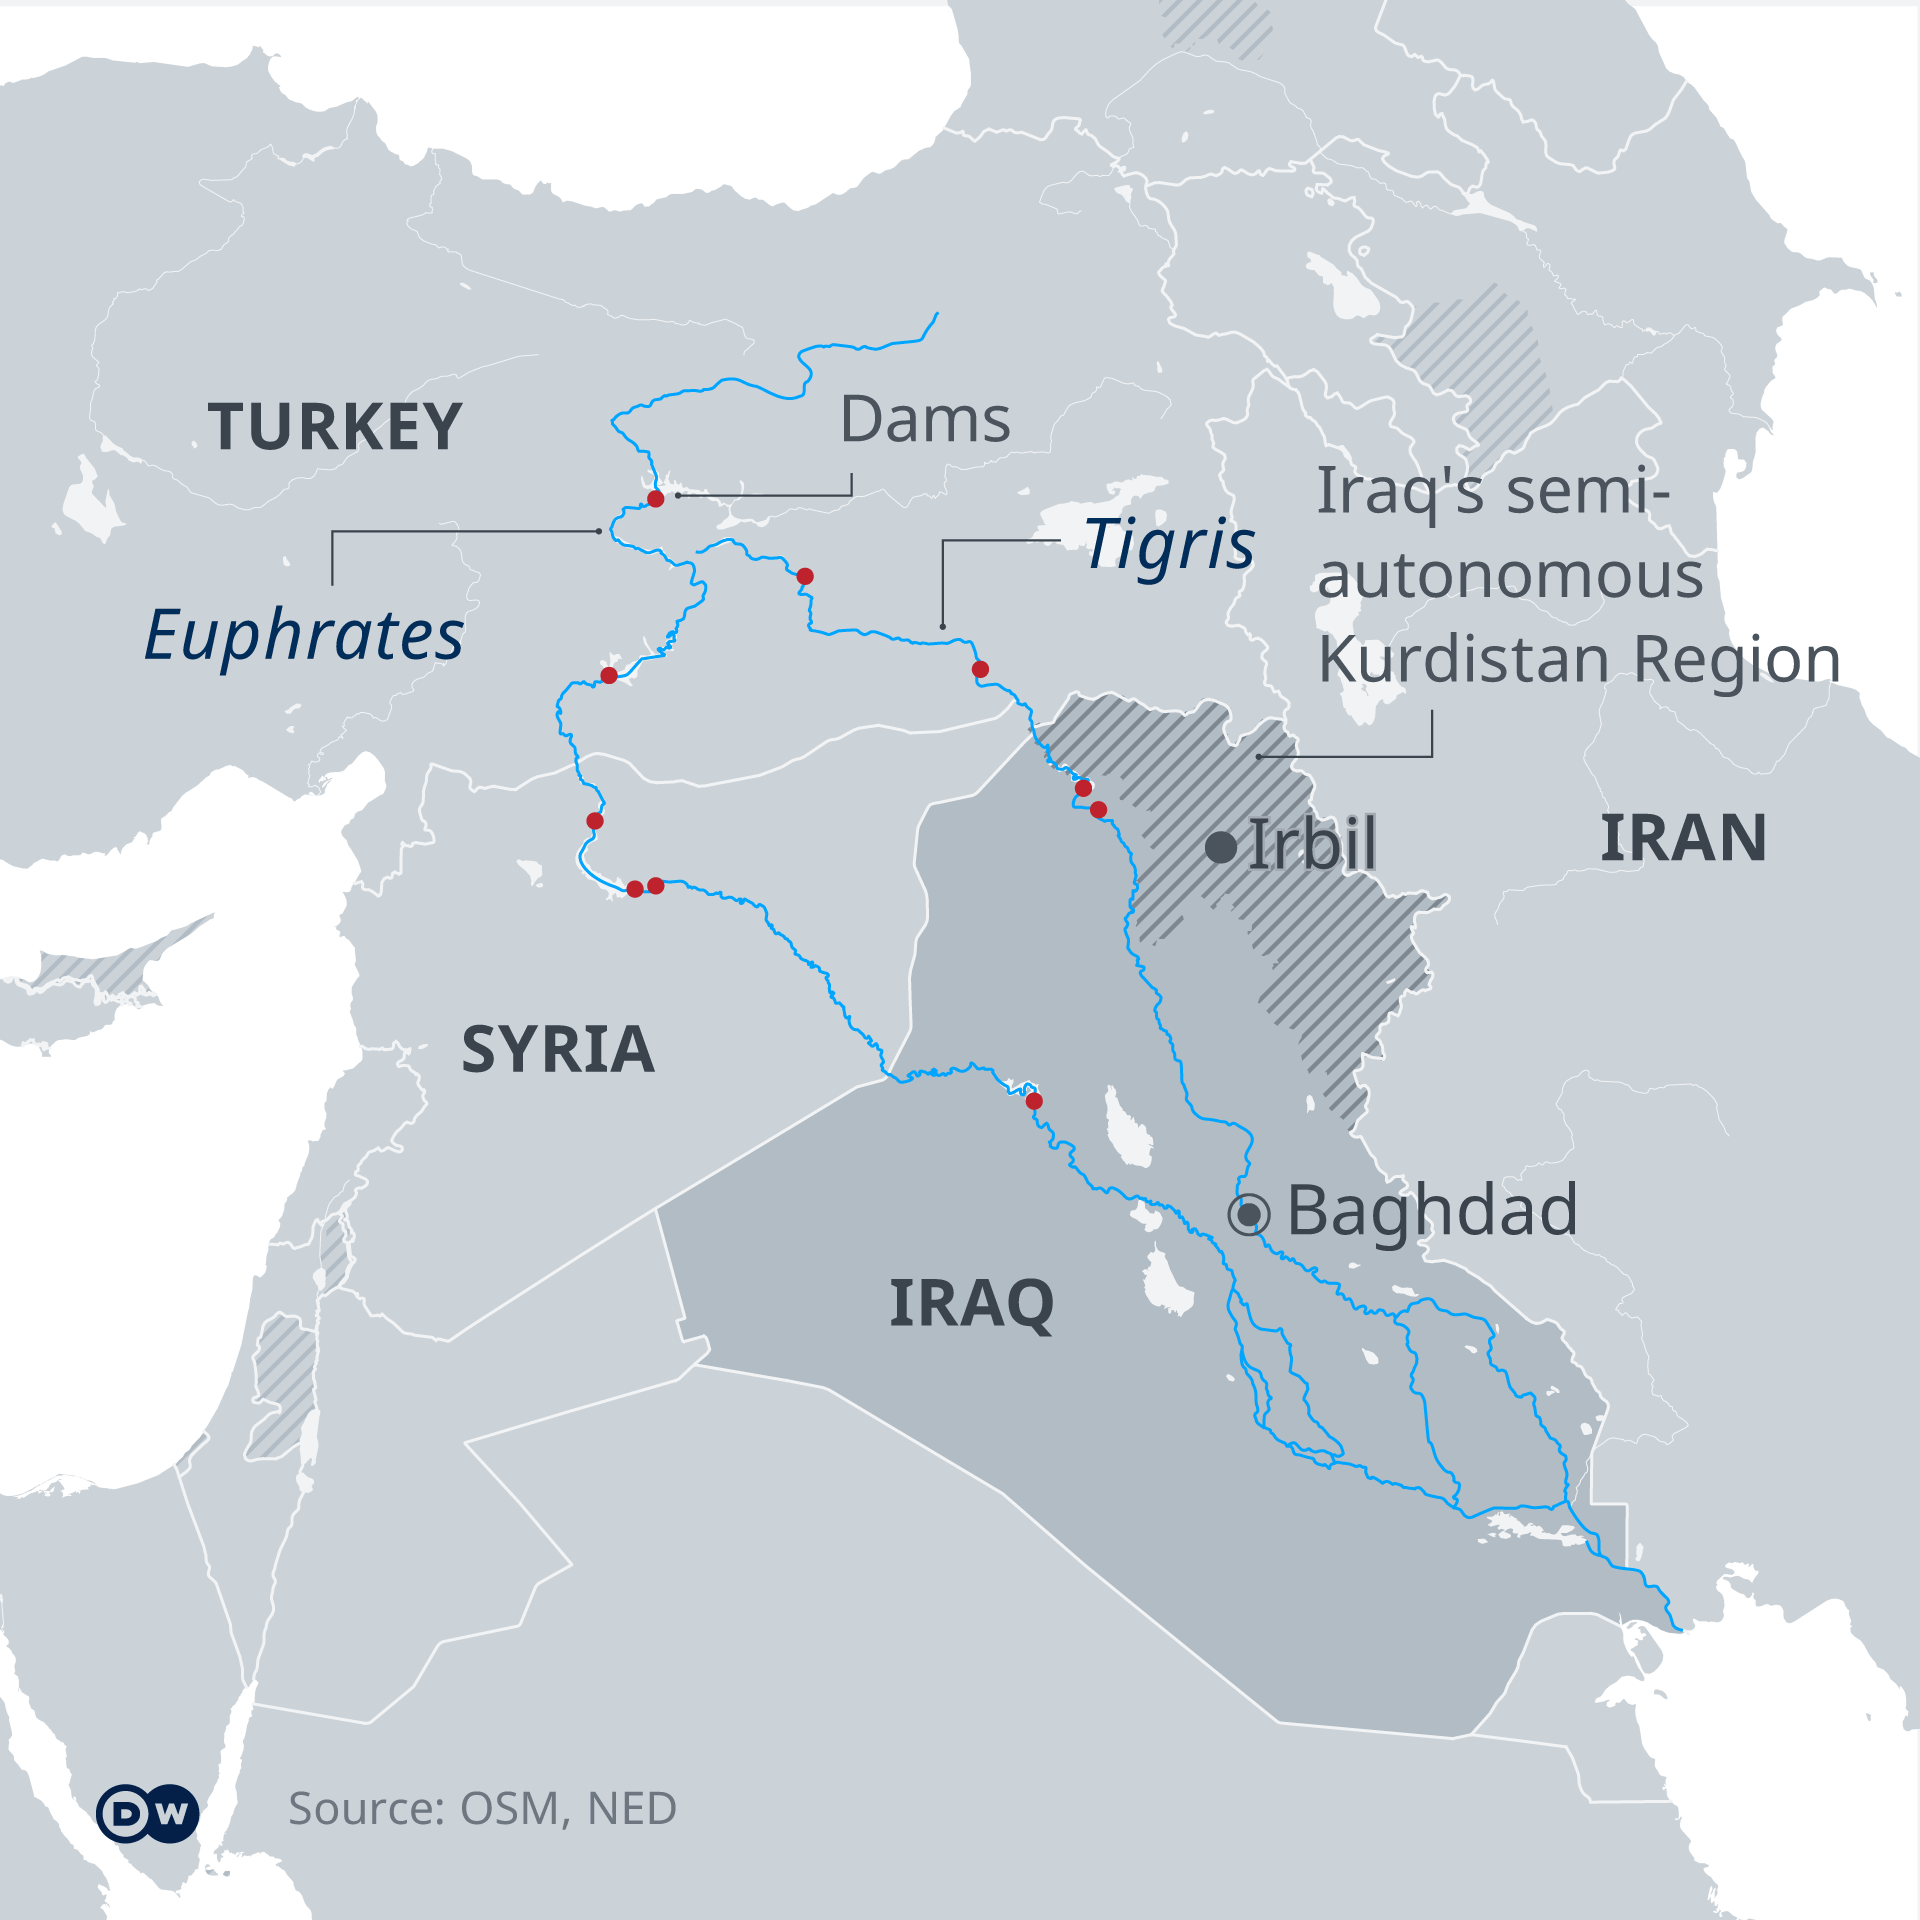 Map showing existing dams on the Euphrates and Tigris rivers